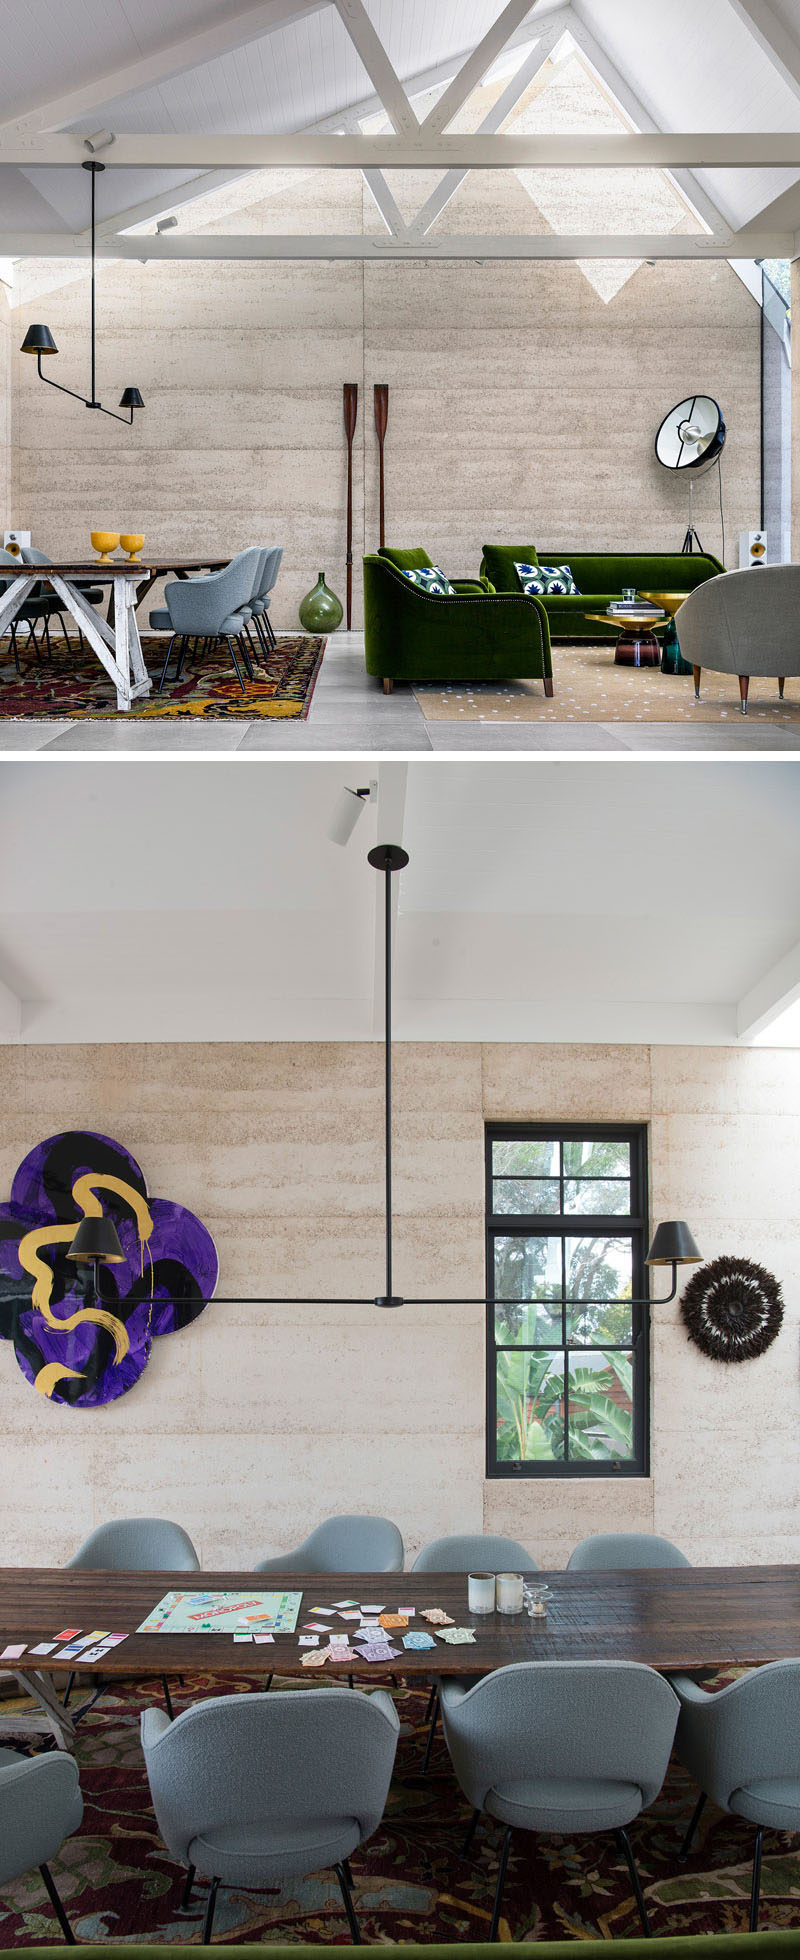 This house features rammed earth walls in the combined living room and dining room. #RammedEarthWalls #LivingRoom #DiningRoom